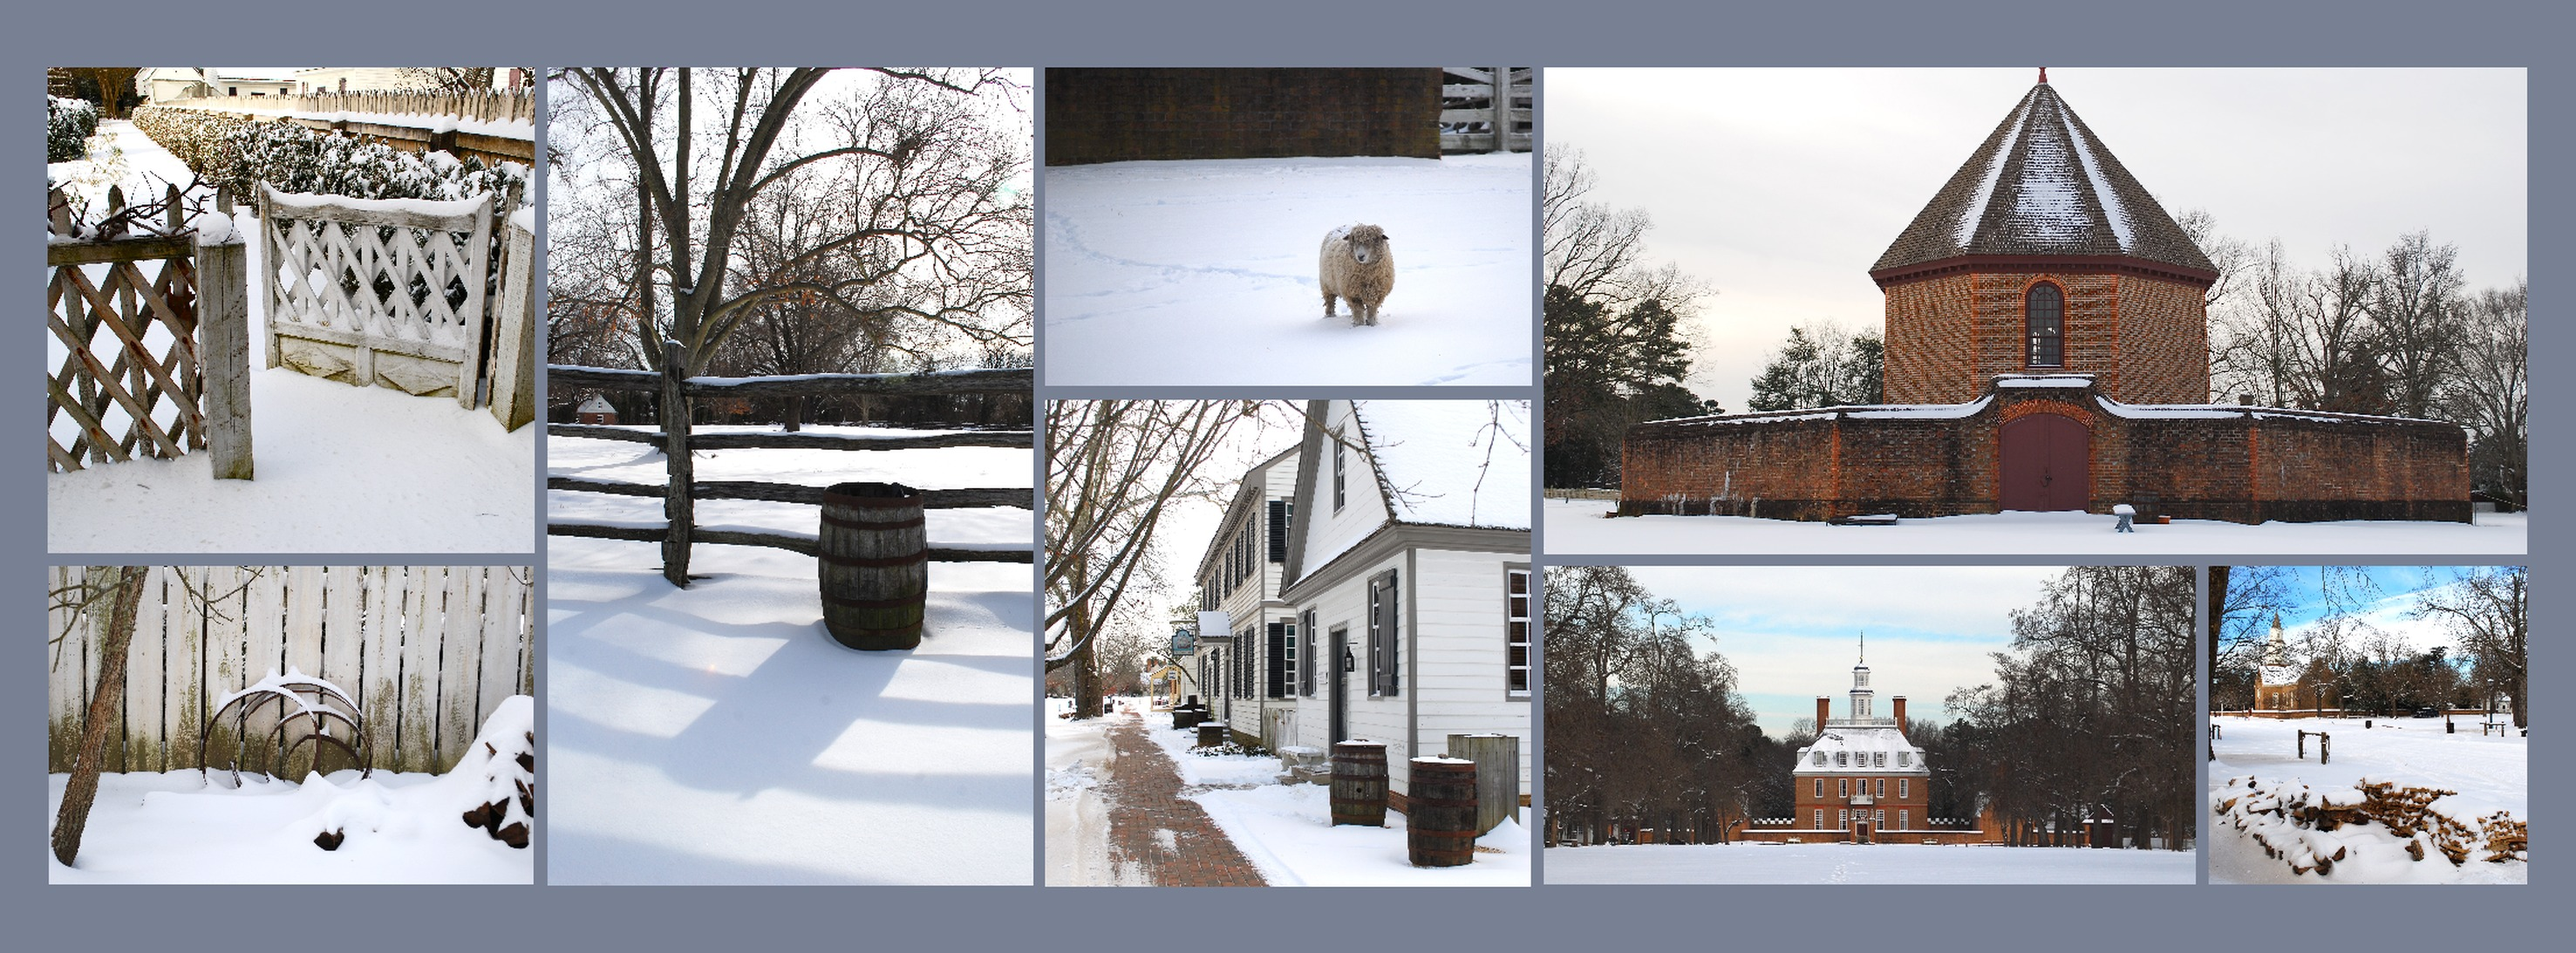 Facebook Cover Collage : Winter facebook covers cropdog photo collage